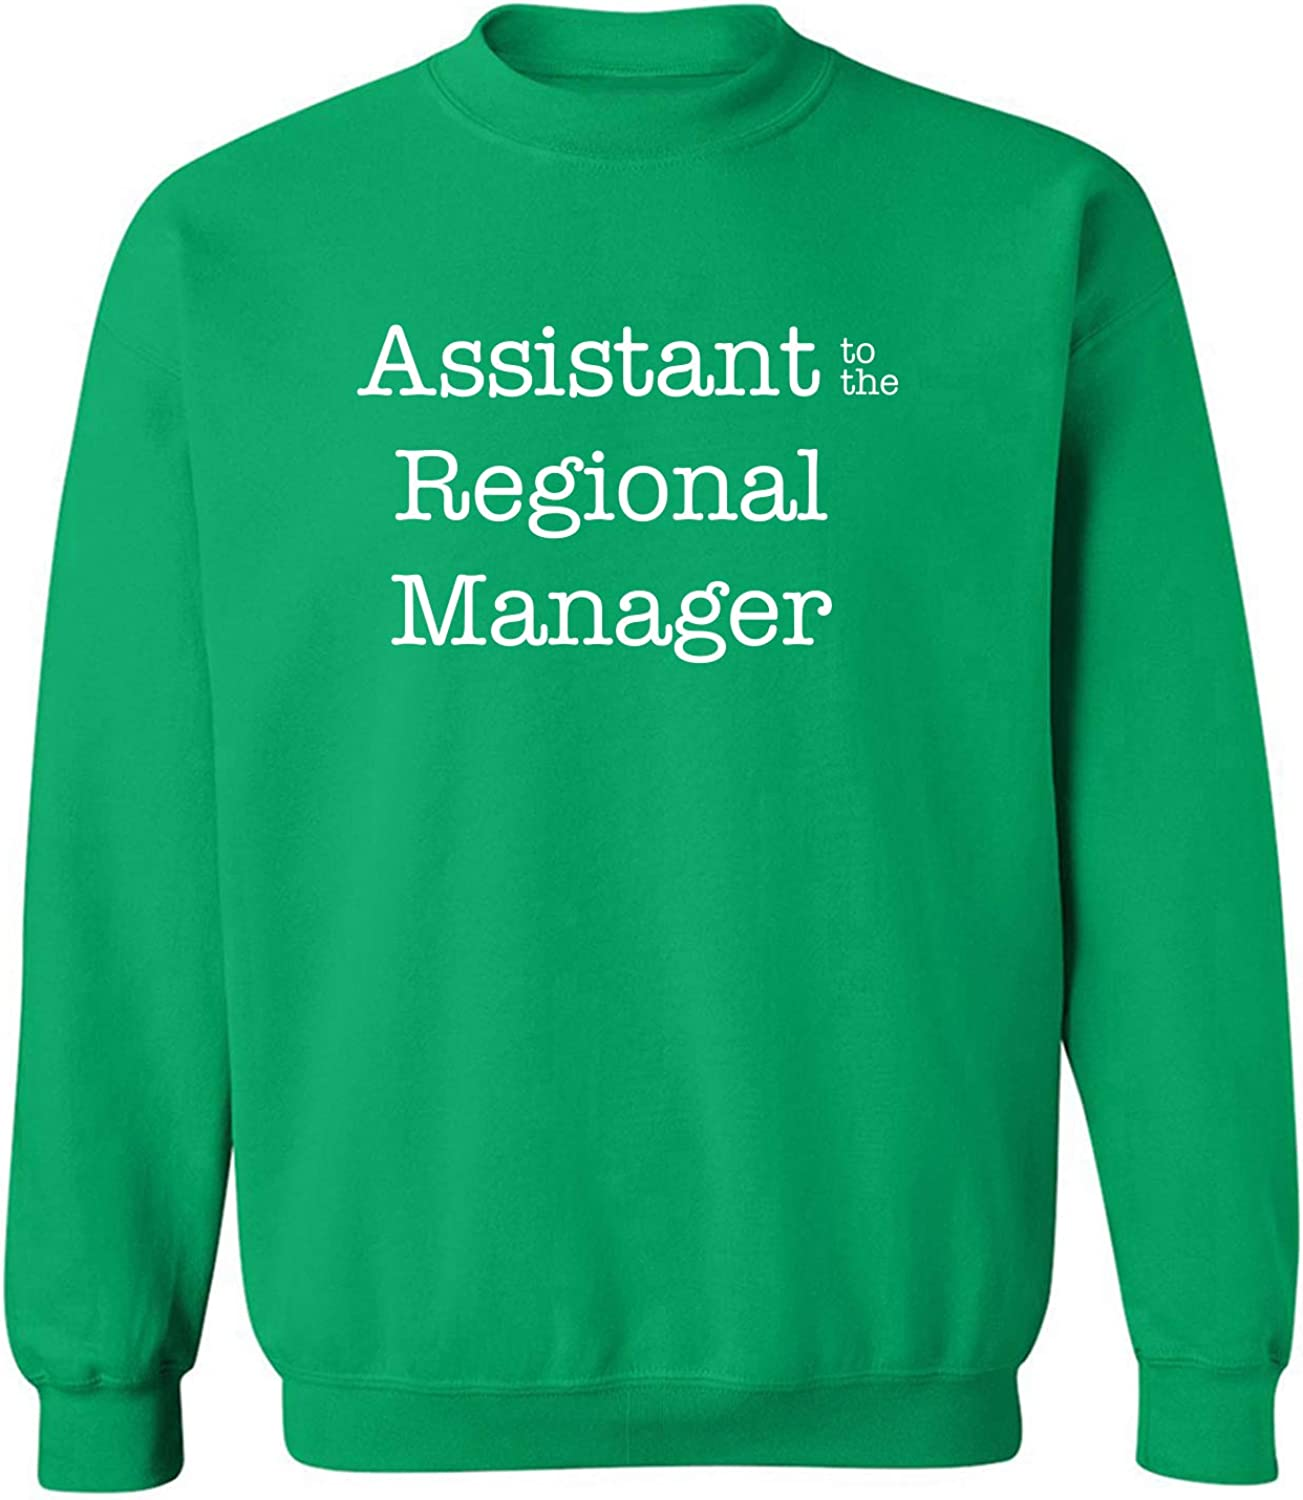 Assistant to the Regional Manager Crewneck Sweatshirt